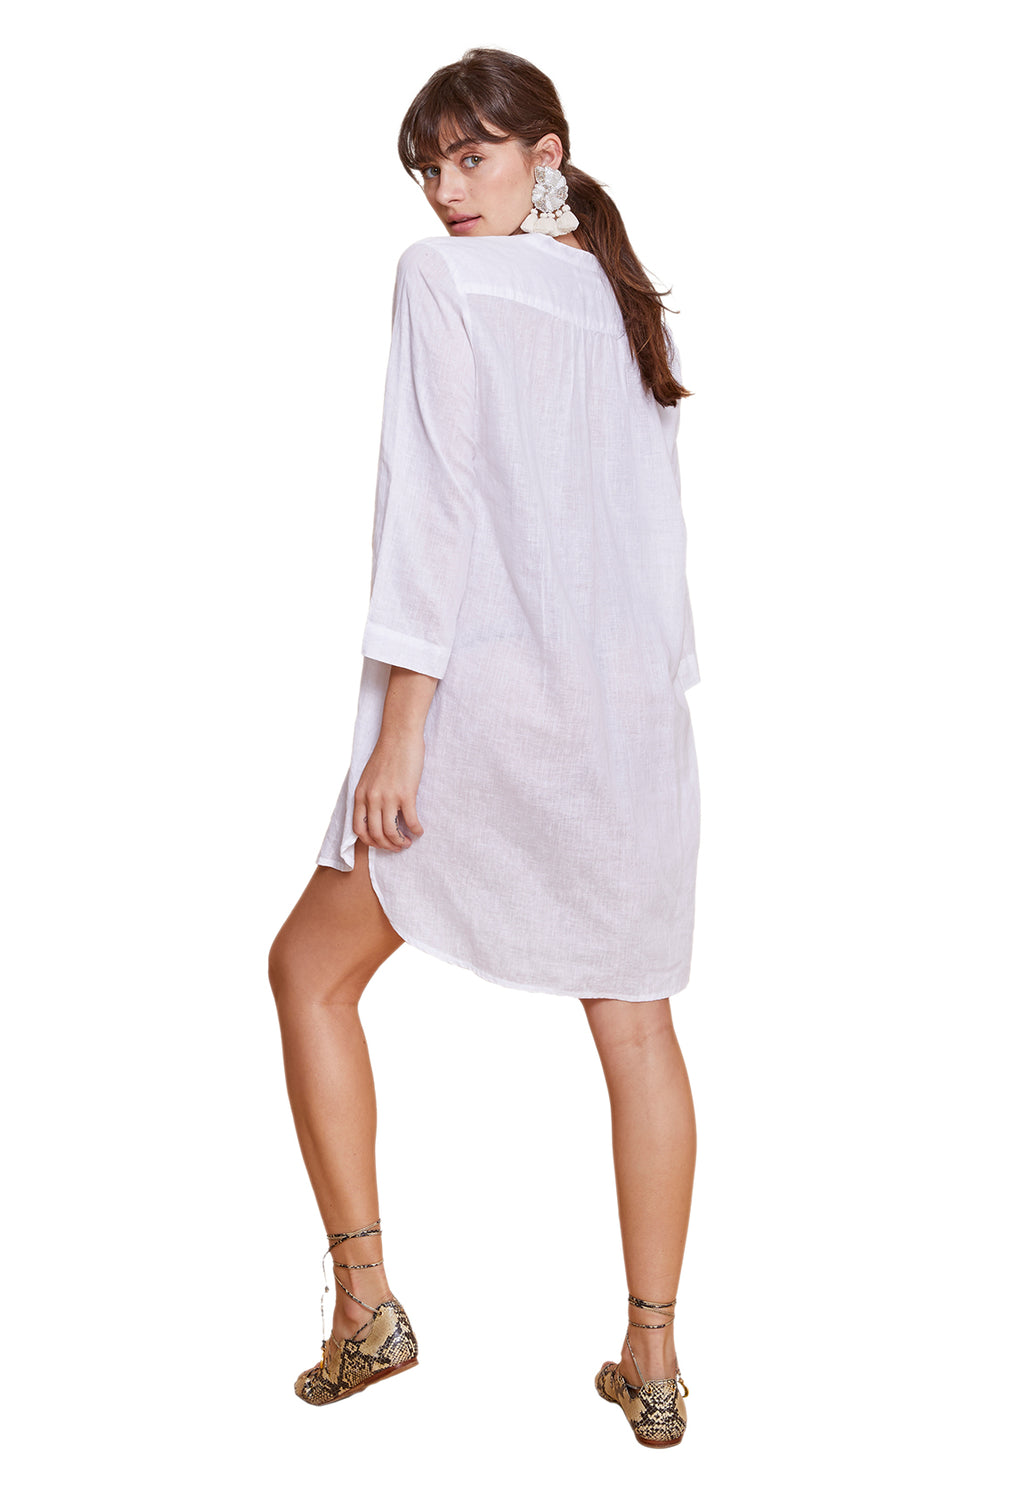 POPPY SHIRT DRESS